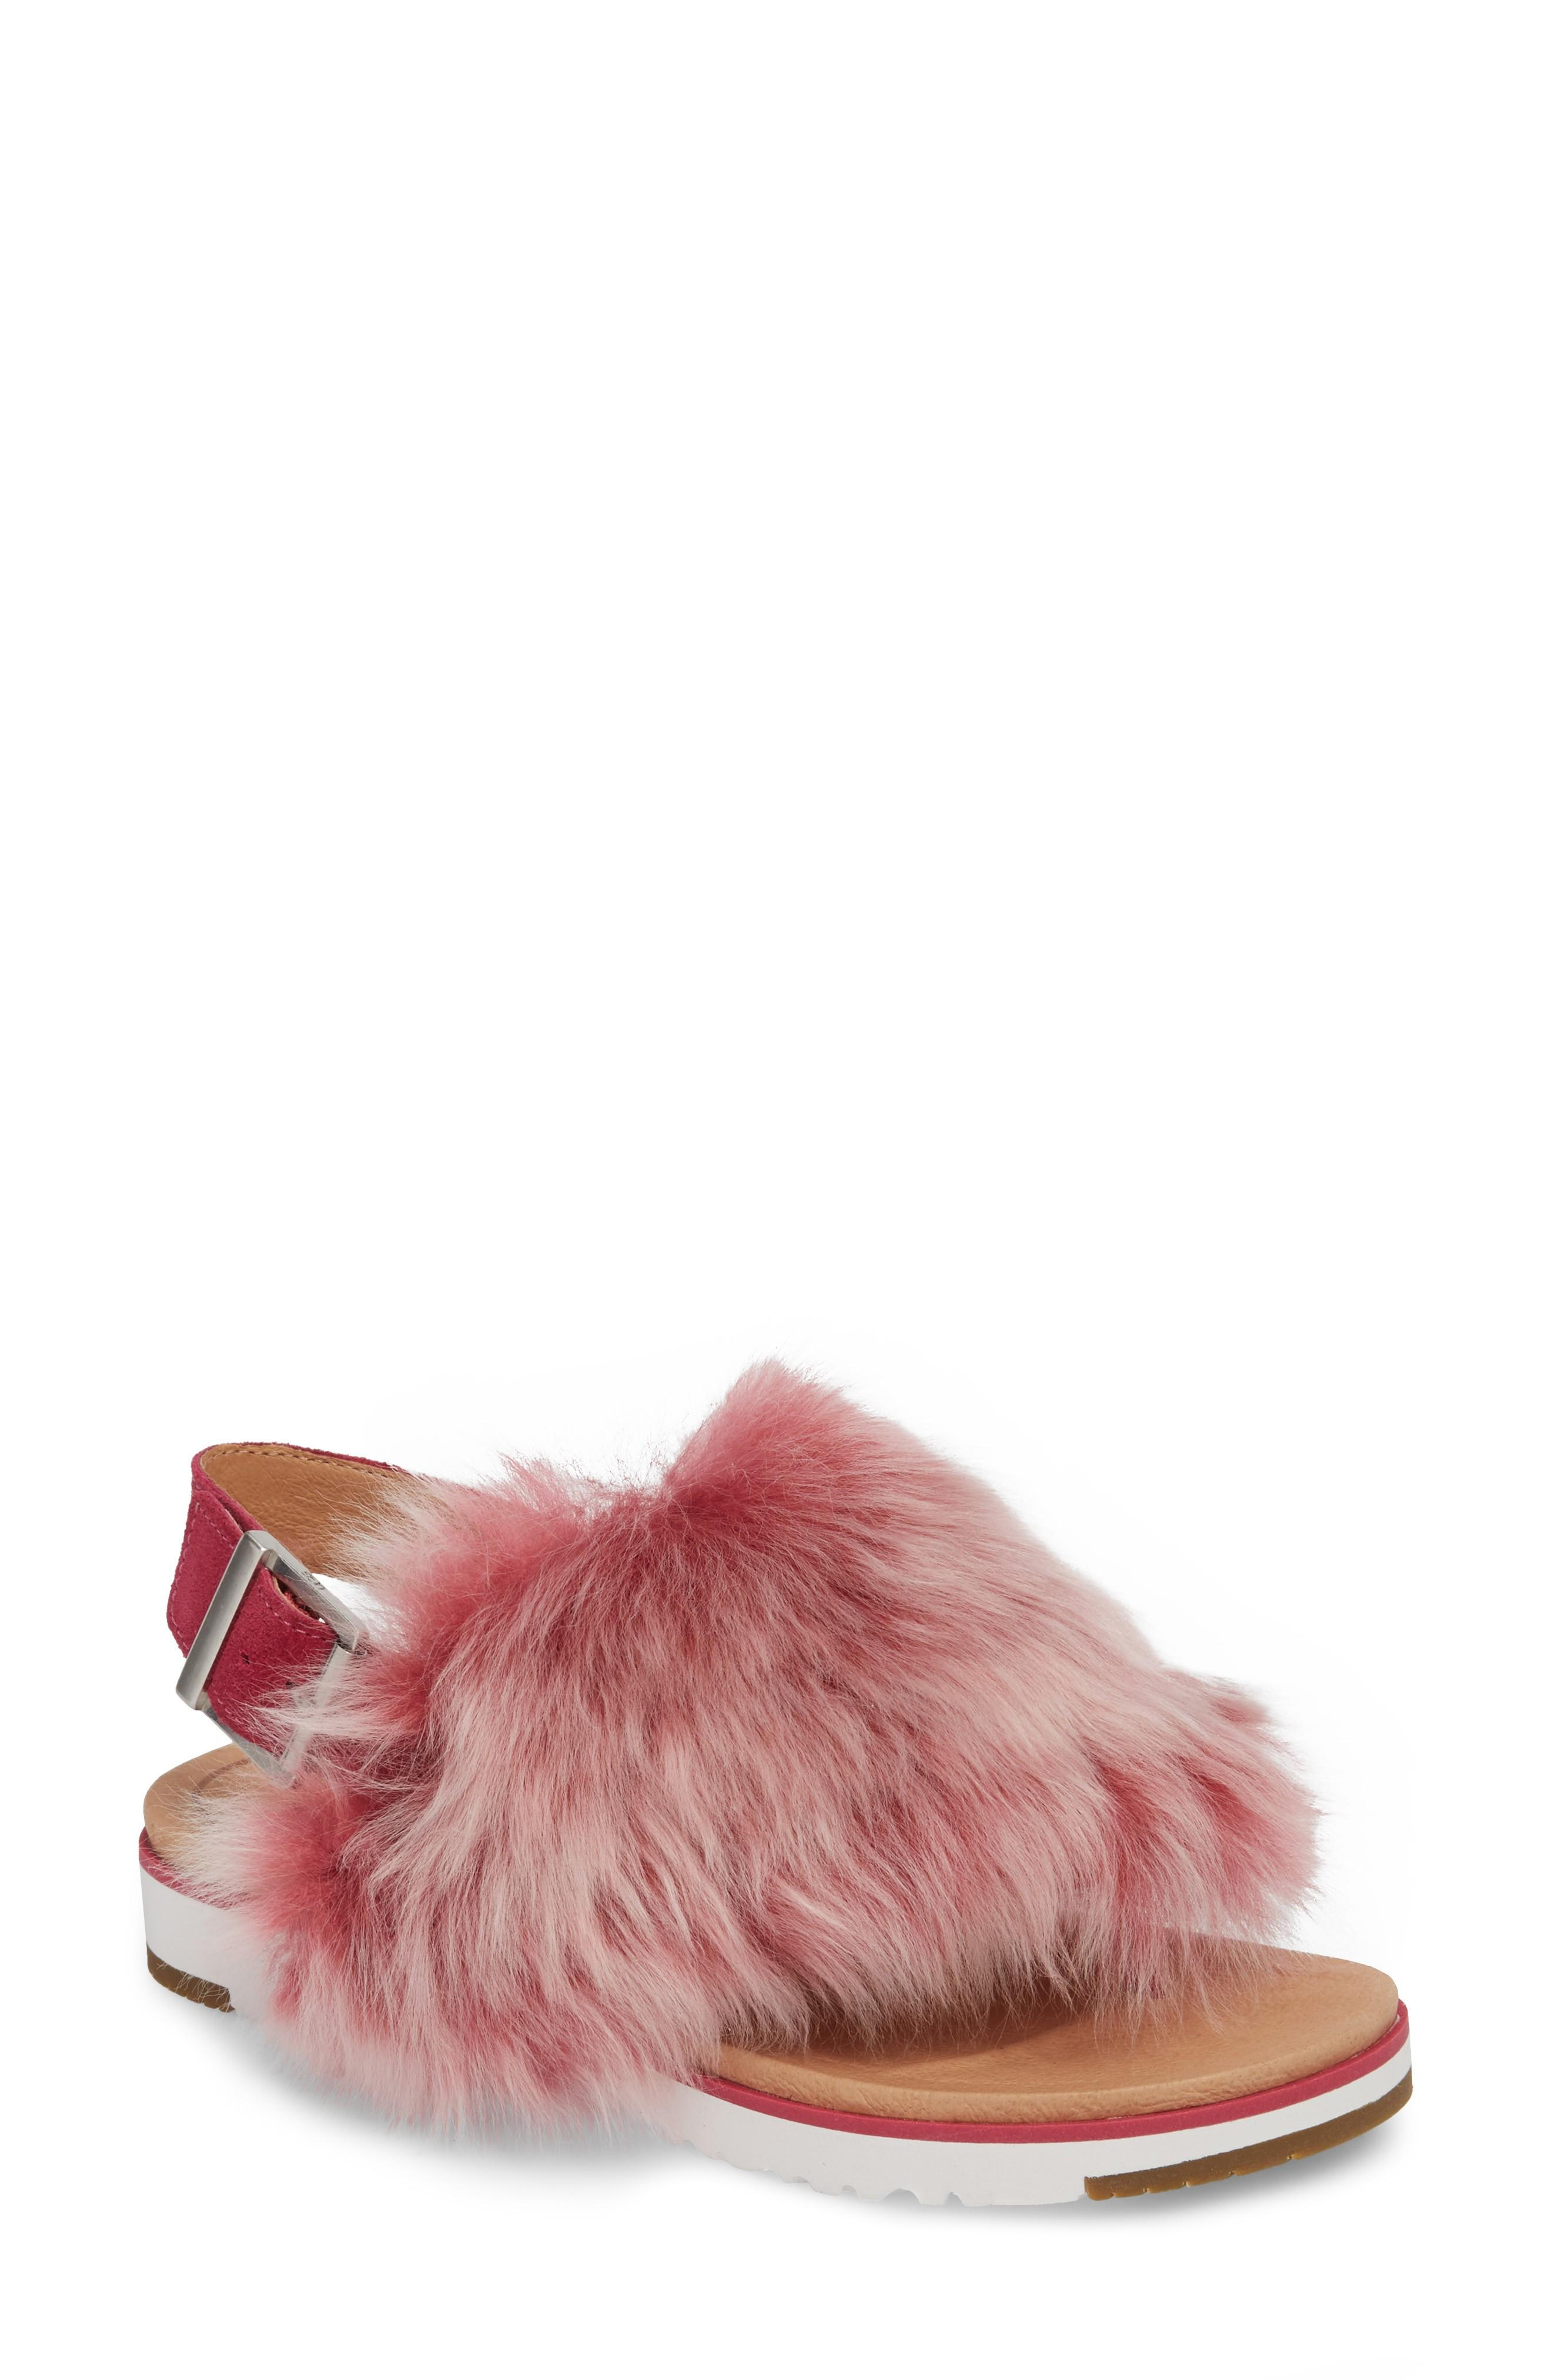 9612fbce49a Ugg Holly Genuine Shearling Sandal in Cerise